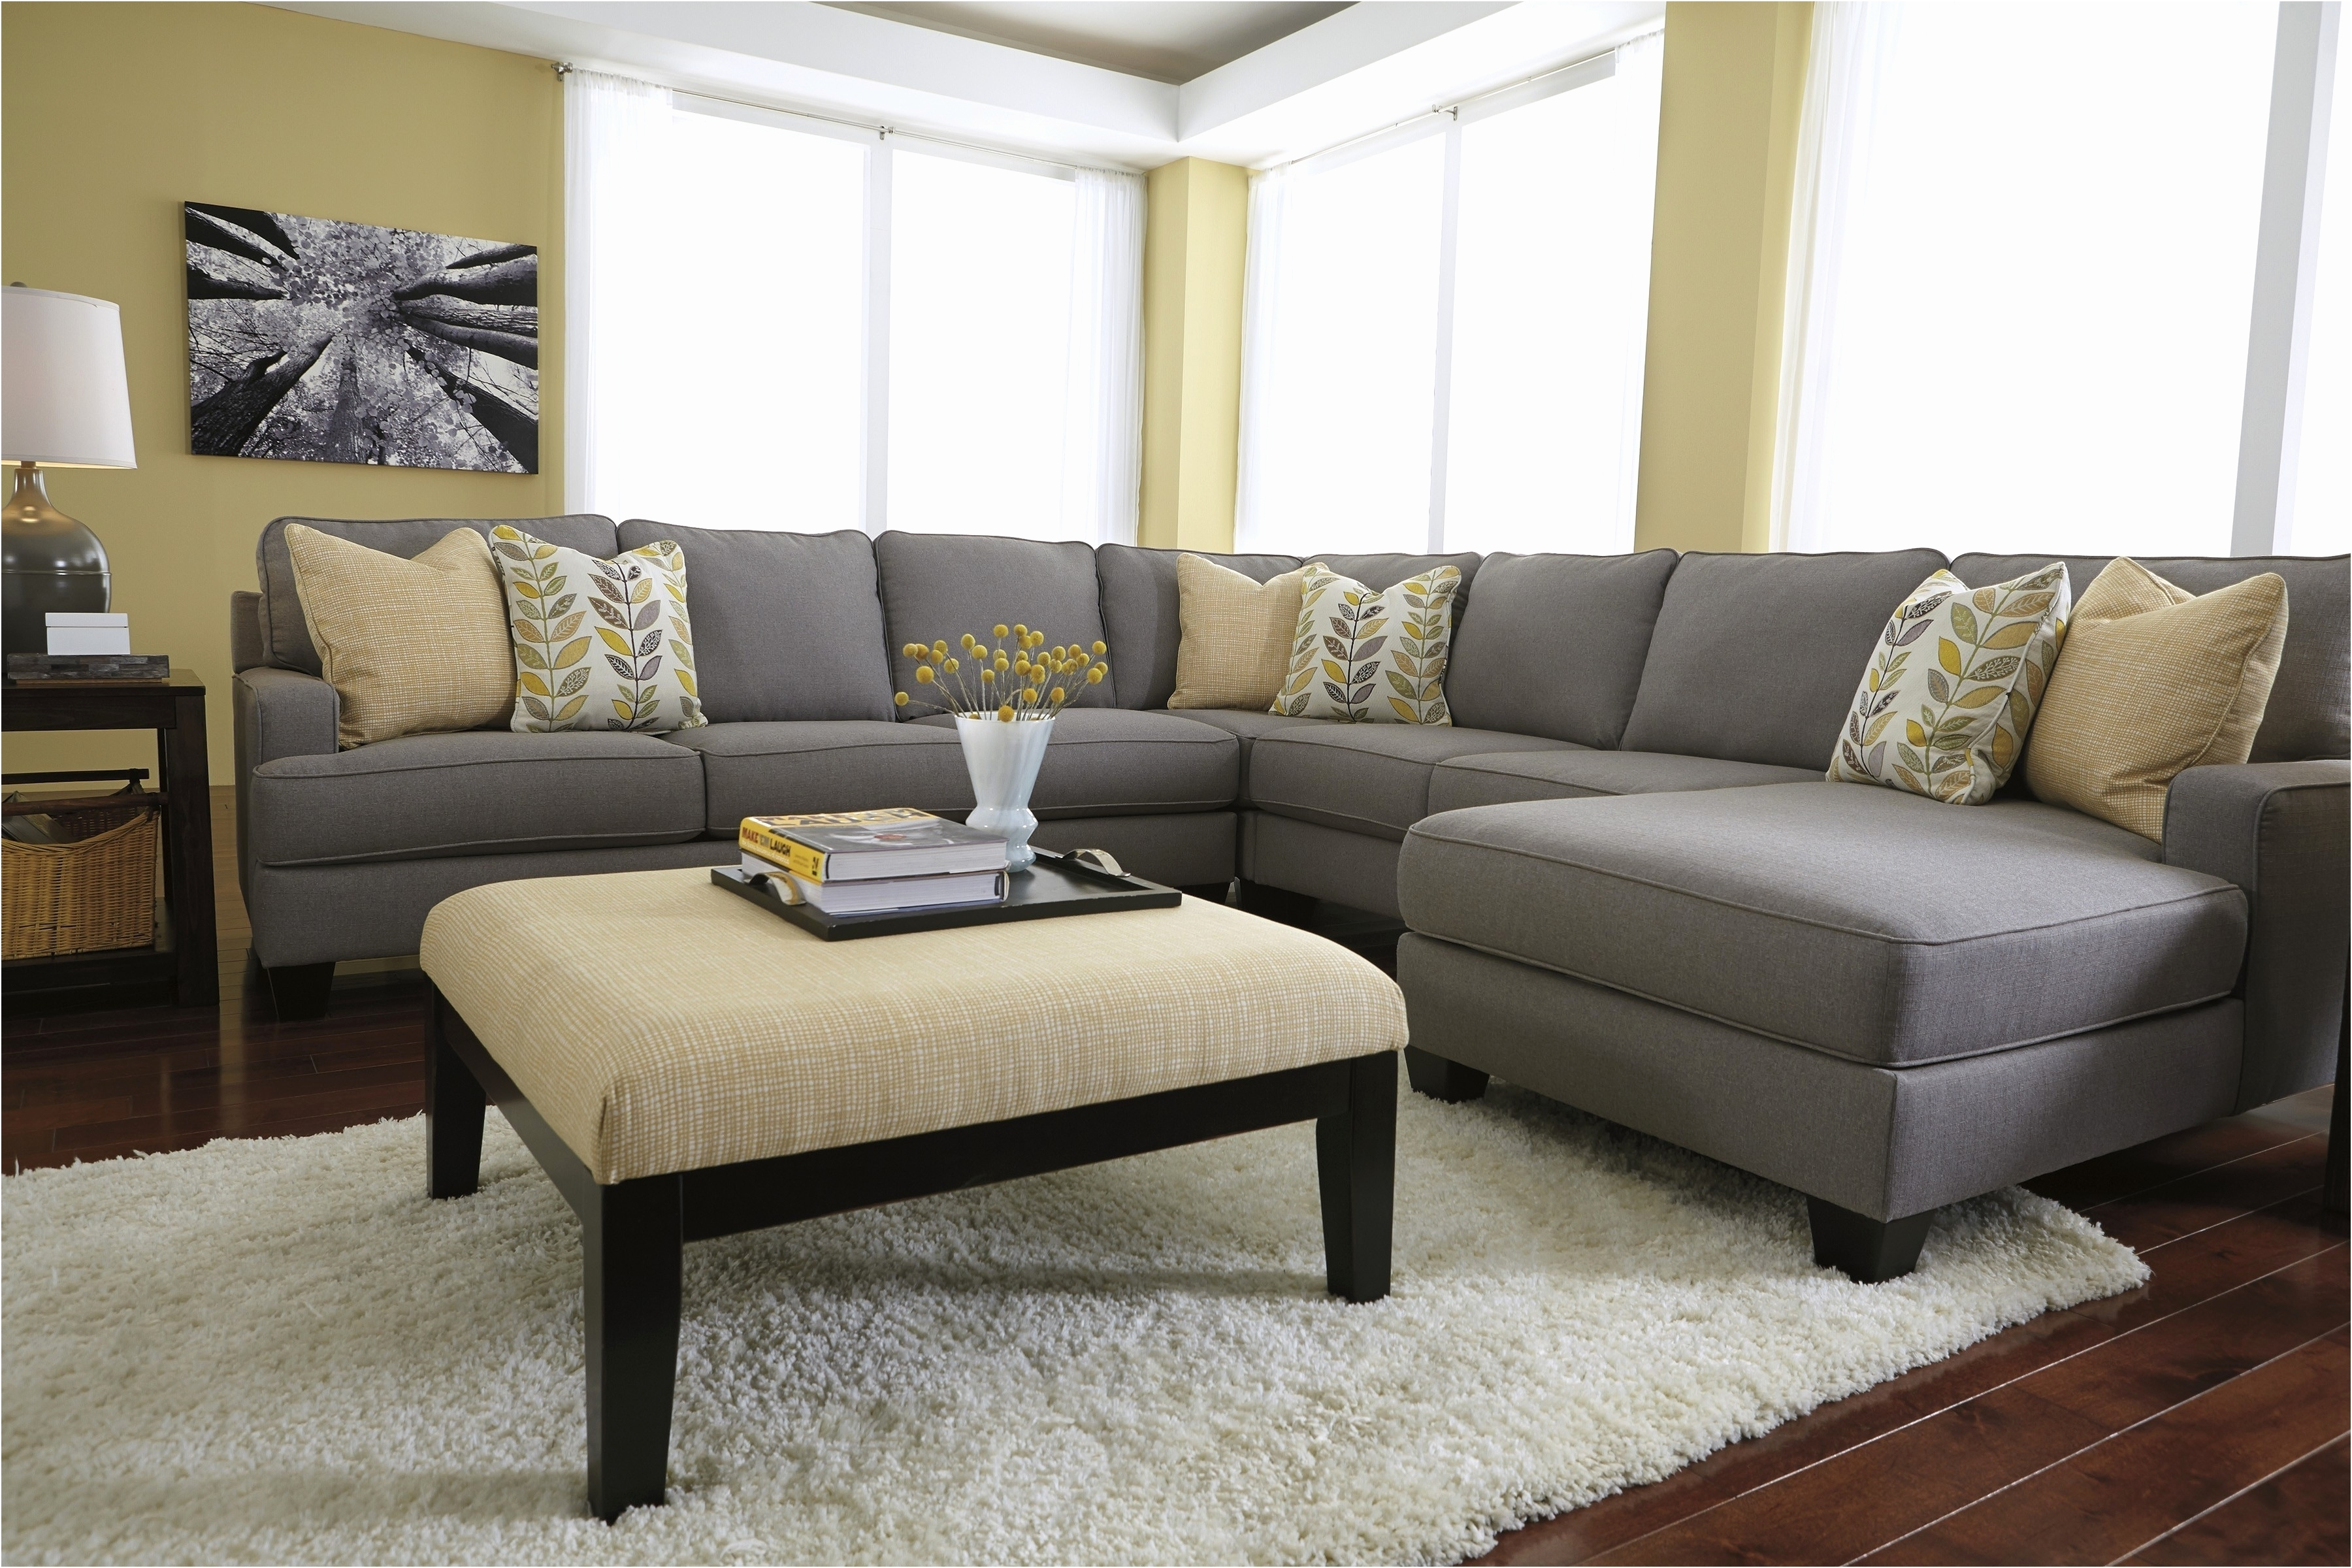 Favorite Huge Sofas Regarding Oversized Sectional Sofas For Sale Sofa Set Huge Couches Toronto (View 2 of 15)